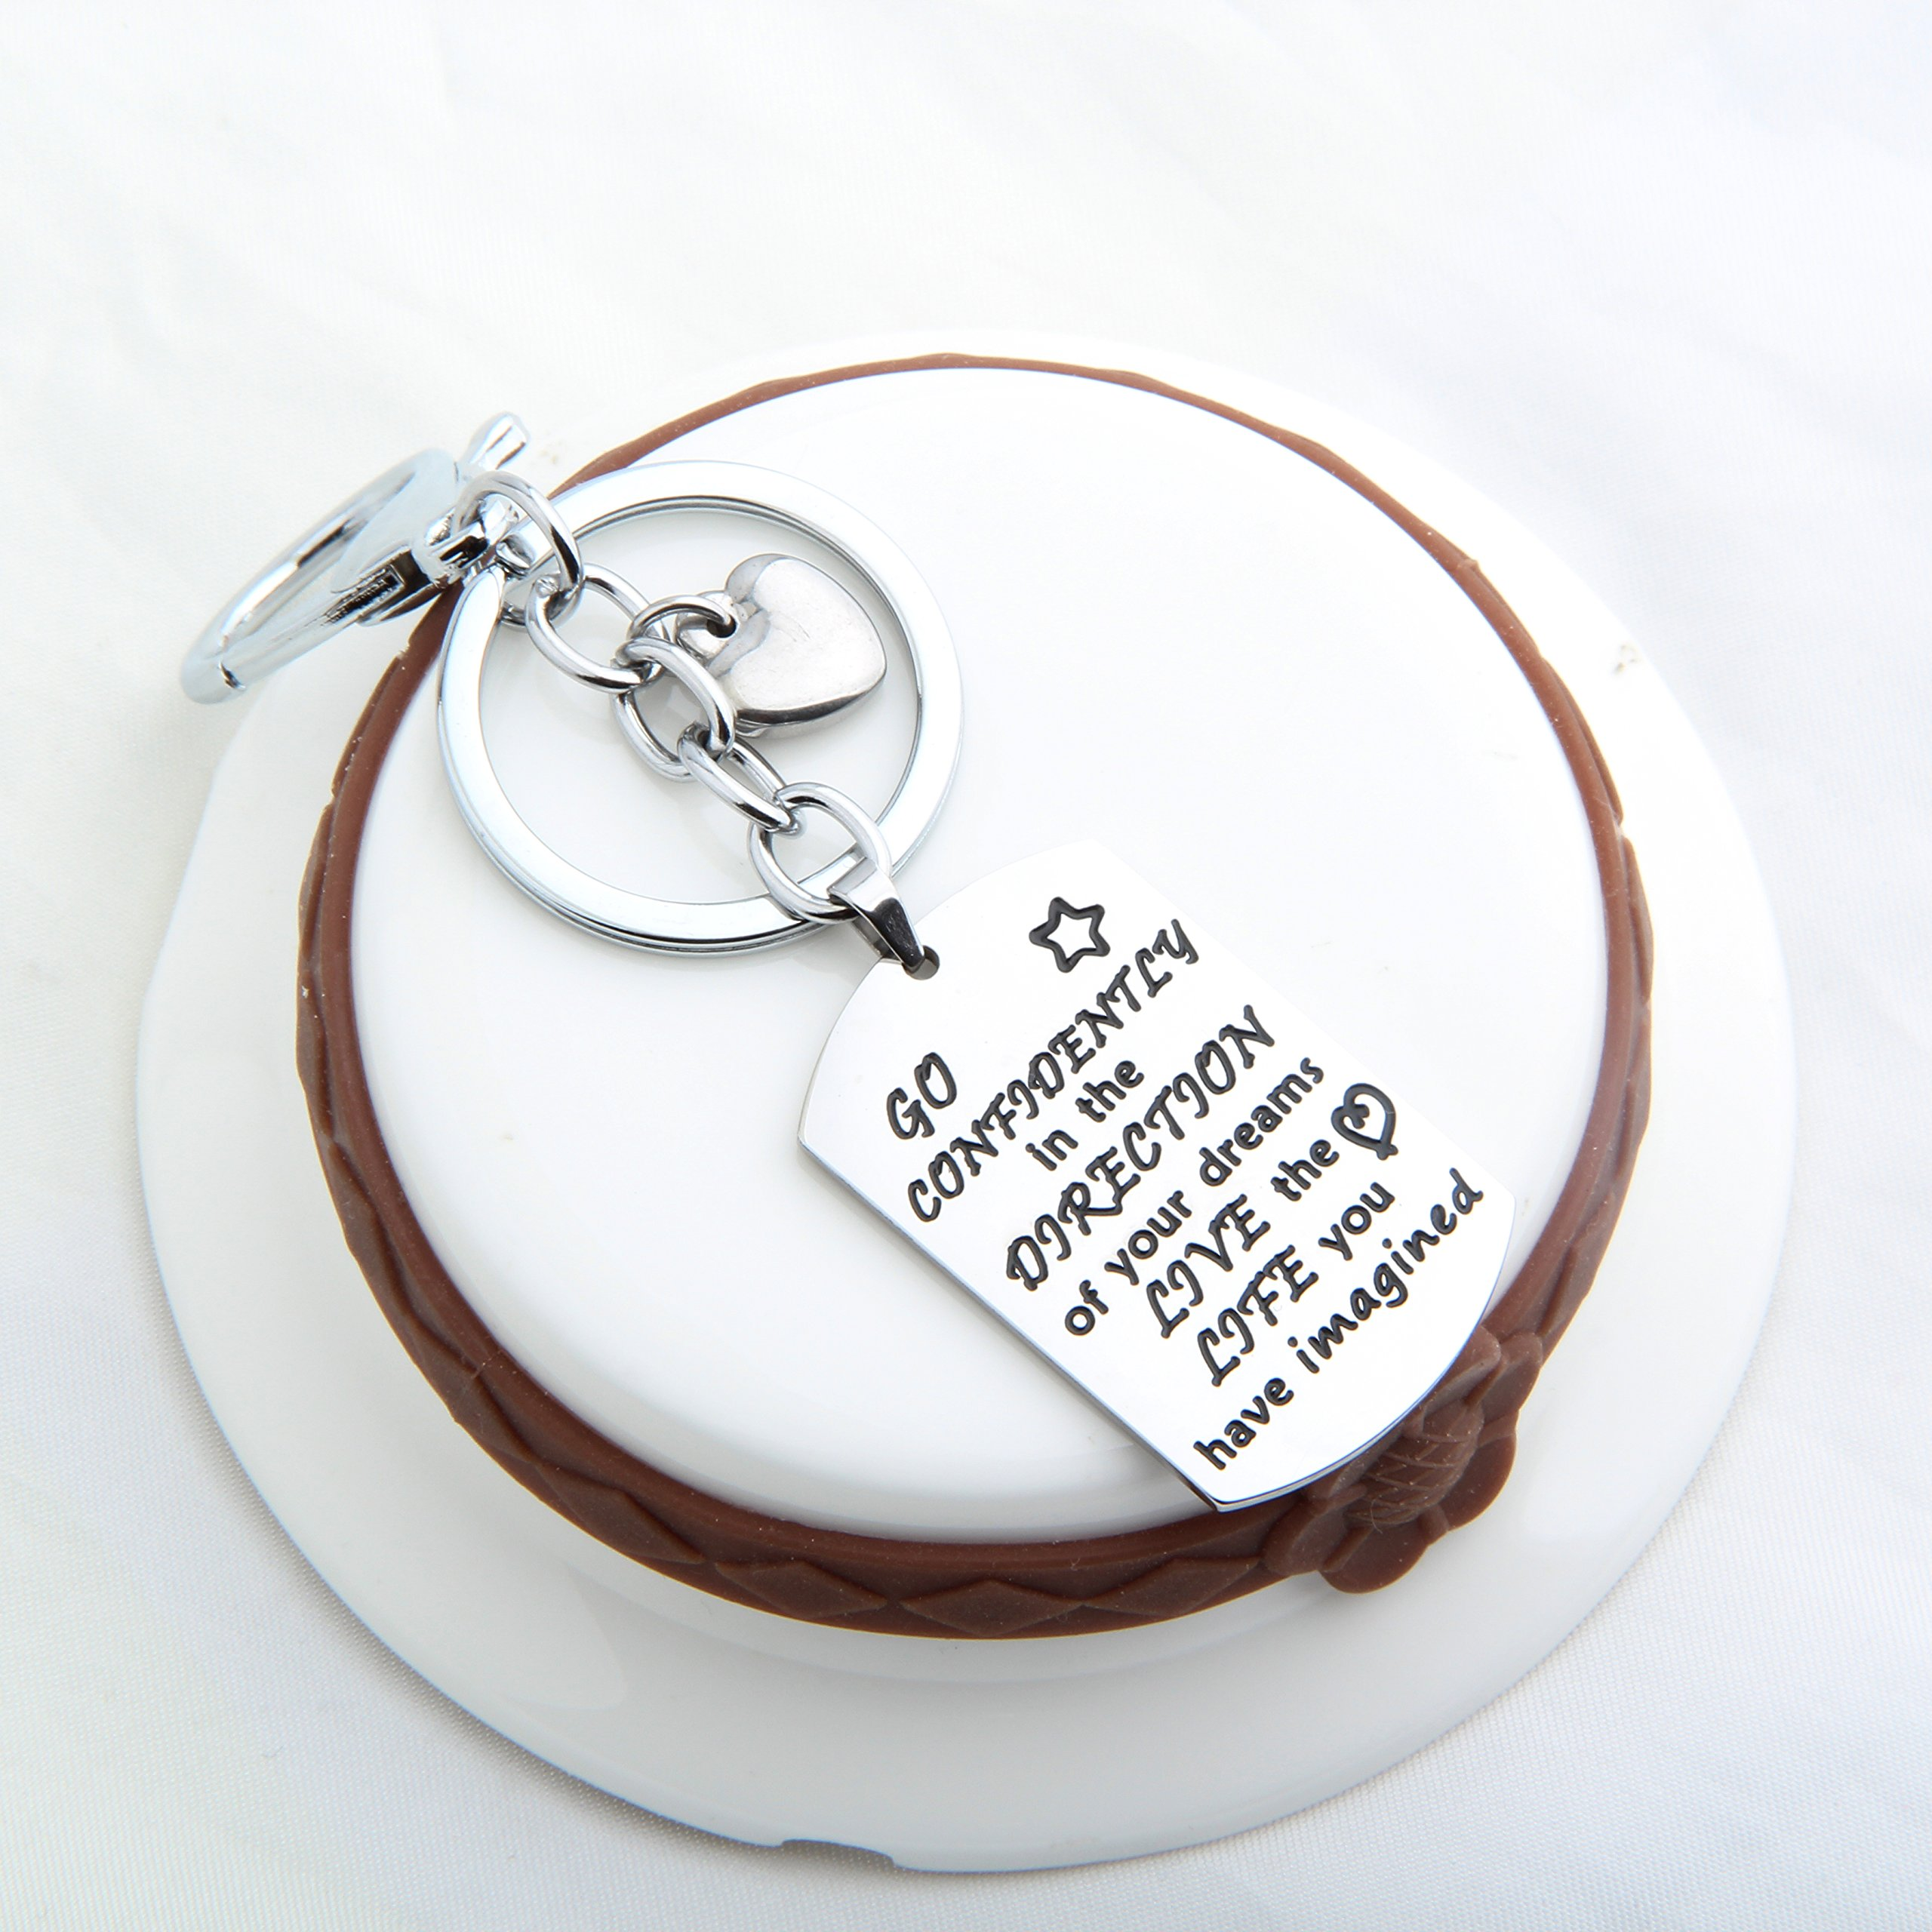 Gzrlyf Graduation Keychain Go Confidently In The Direction Of Your Dreams Keychain Inspirational Gift (keychain) by Gzrlyf (Image #5)